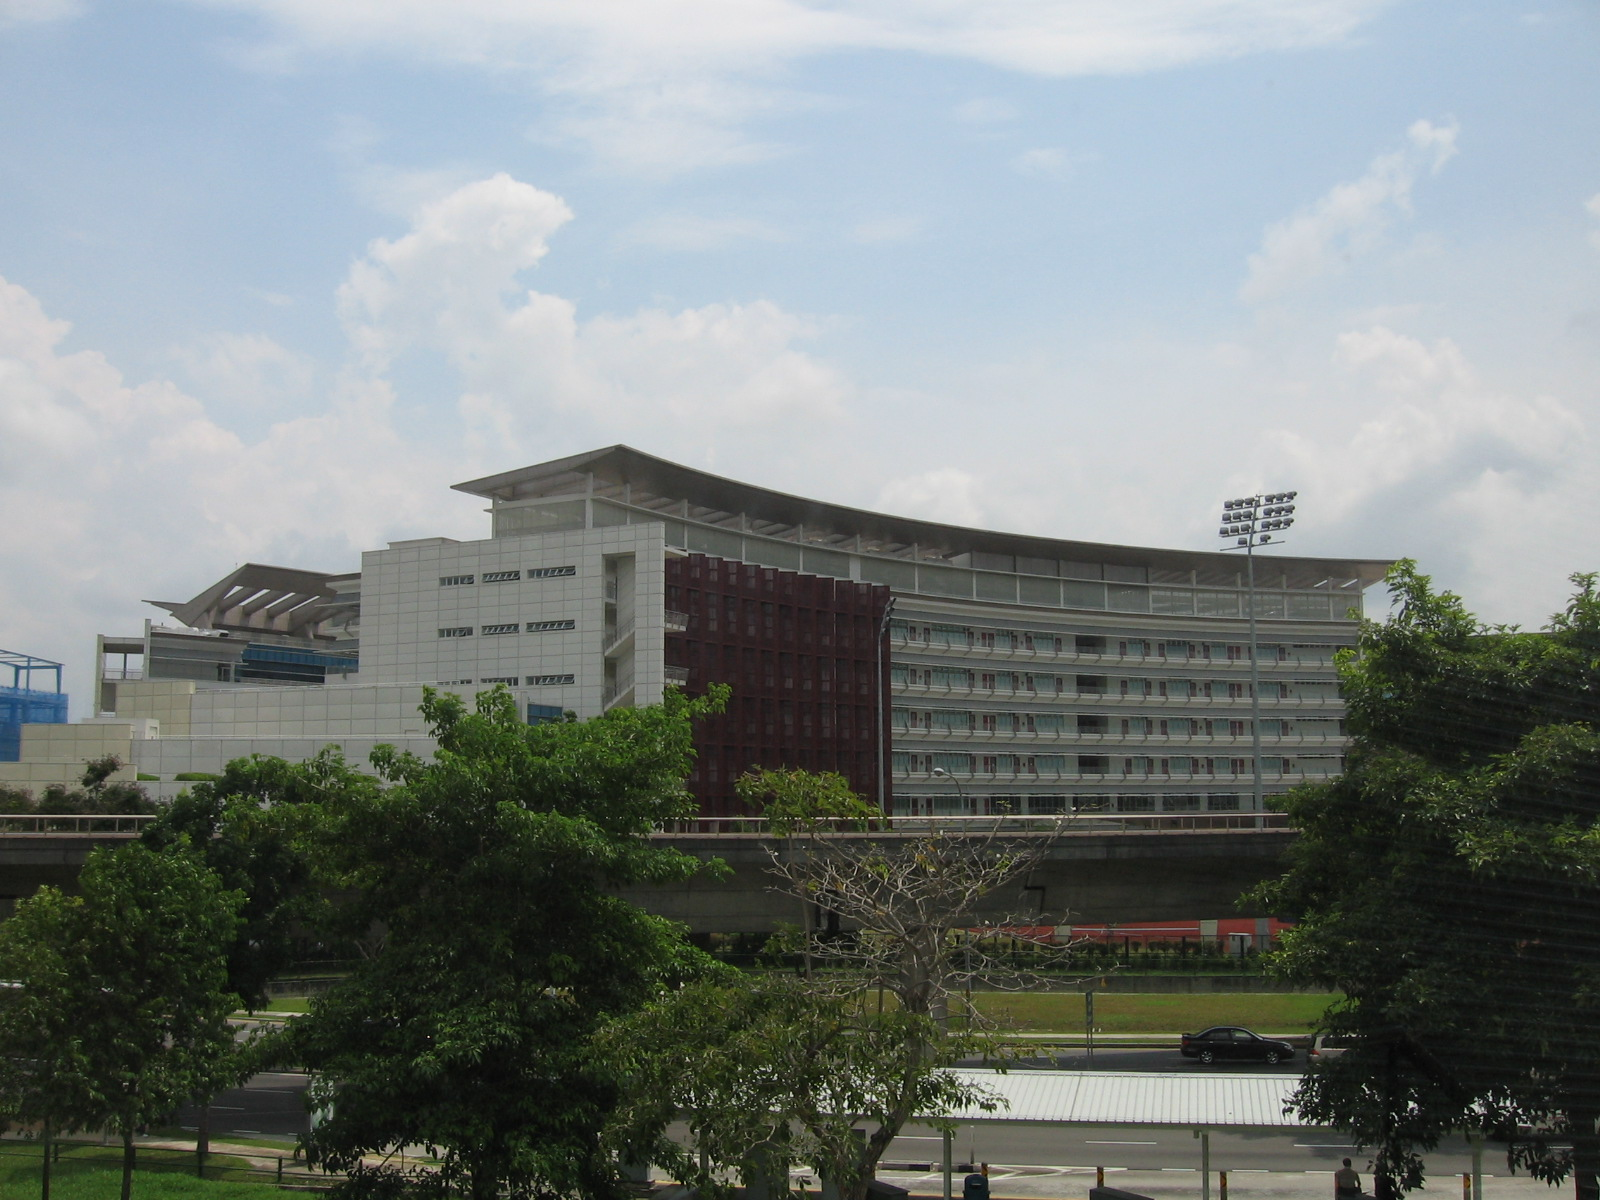 File:ITE COLLEGE EAST, Simei Campus, Jul 06.JPG - Wikipedia, the free ...